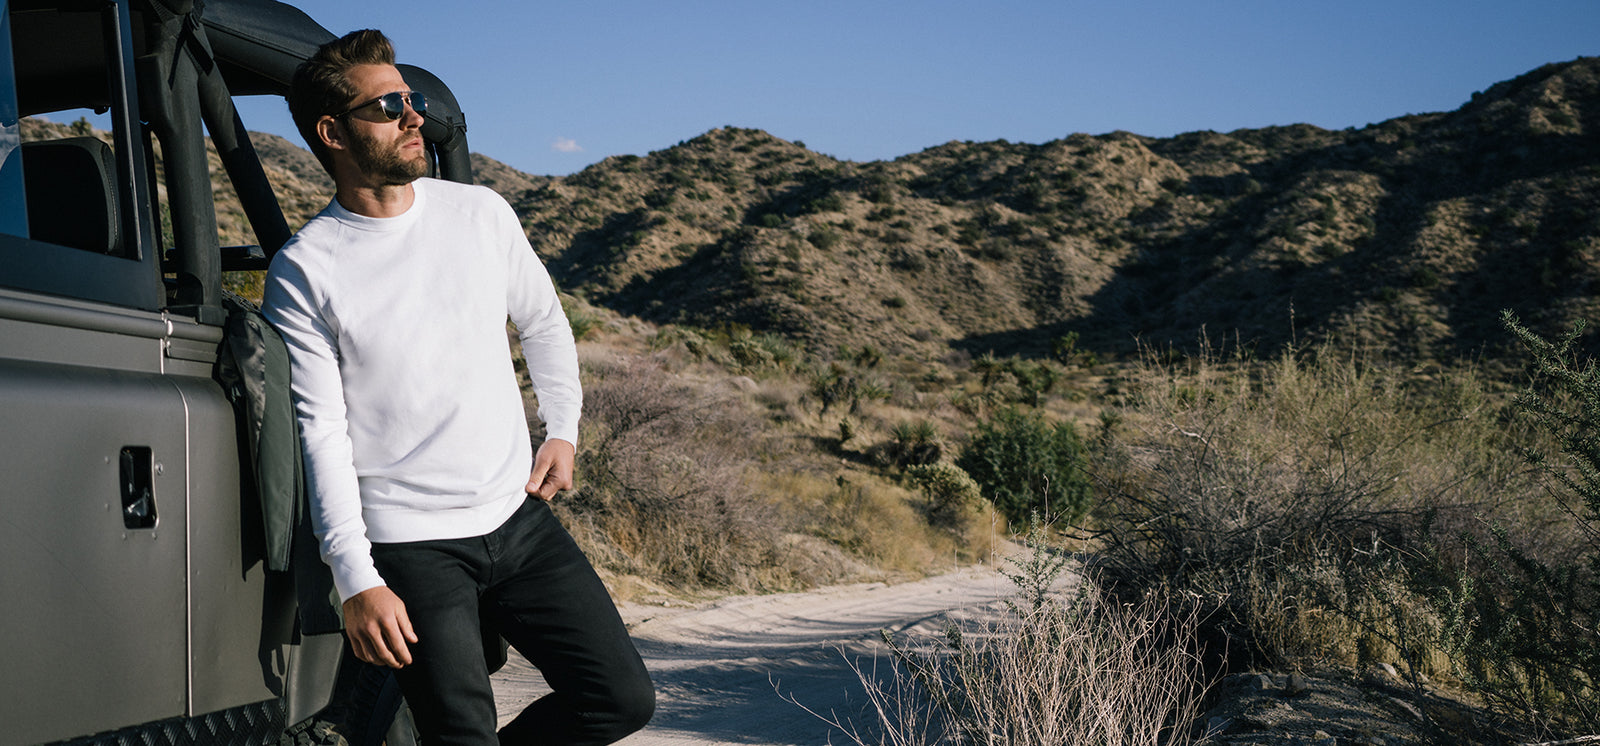 Top Athleisure Trends for Men in 2021